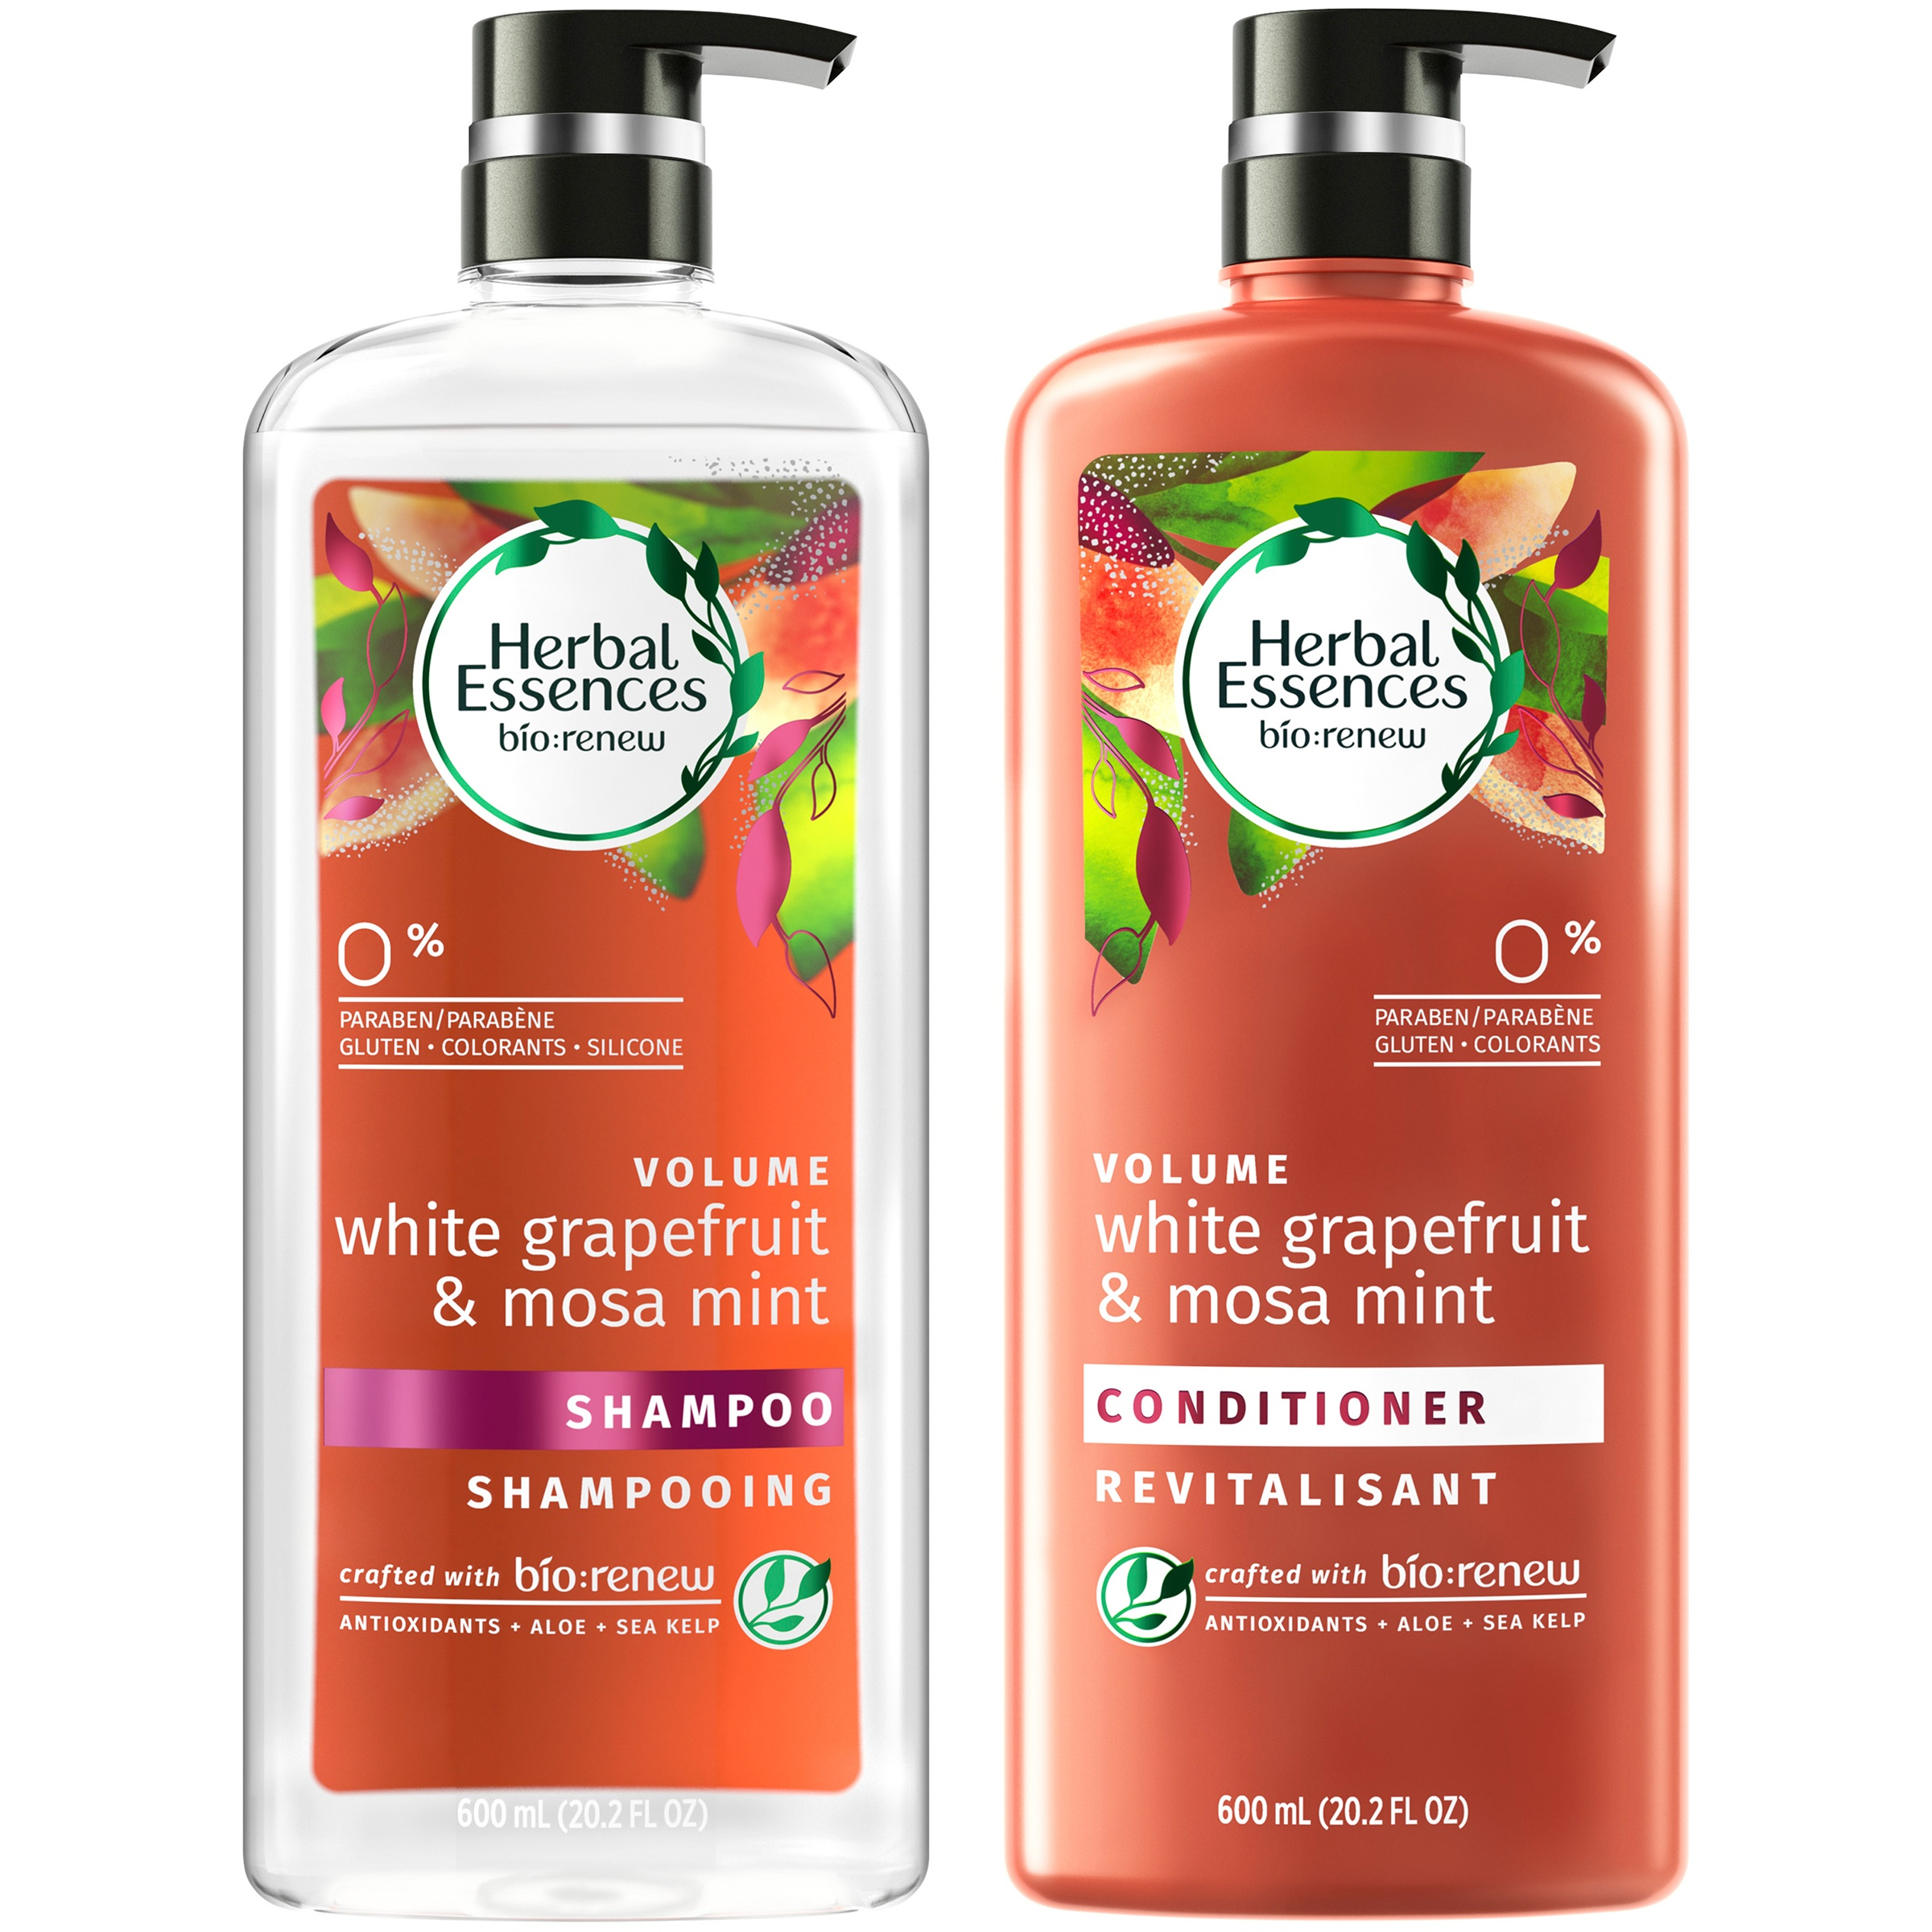 Herbal Essences Bio:Renew White Grapefruit & Mosa Mint Shampoo and Conditioner Set, 20.2 fl oz Each